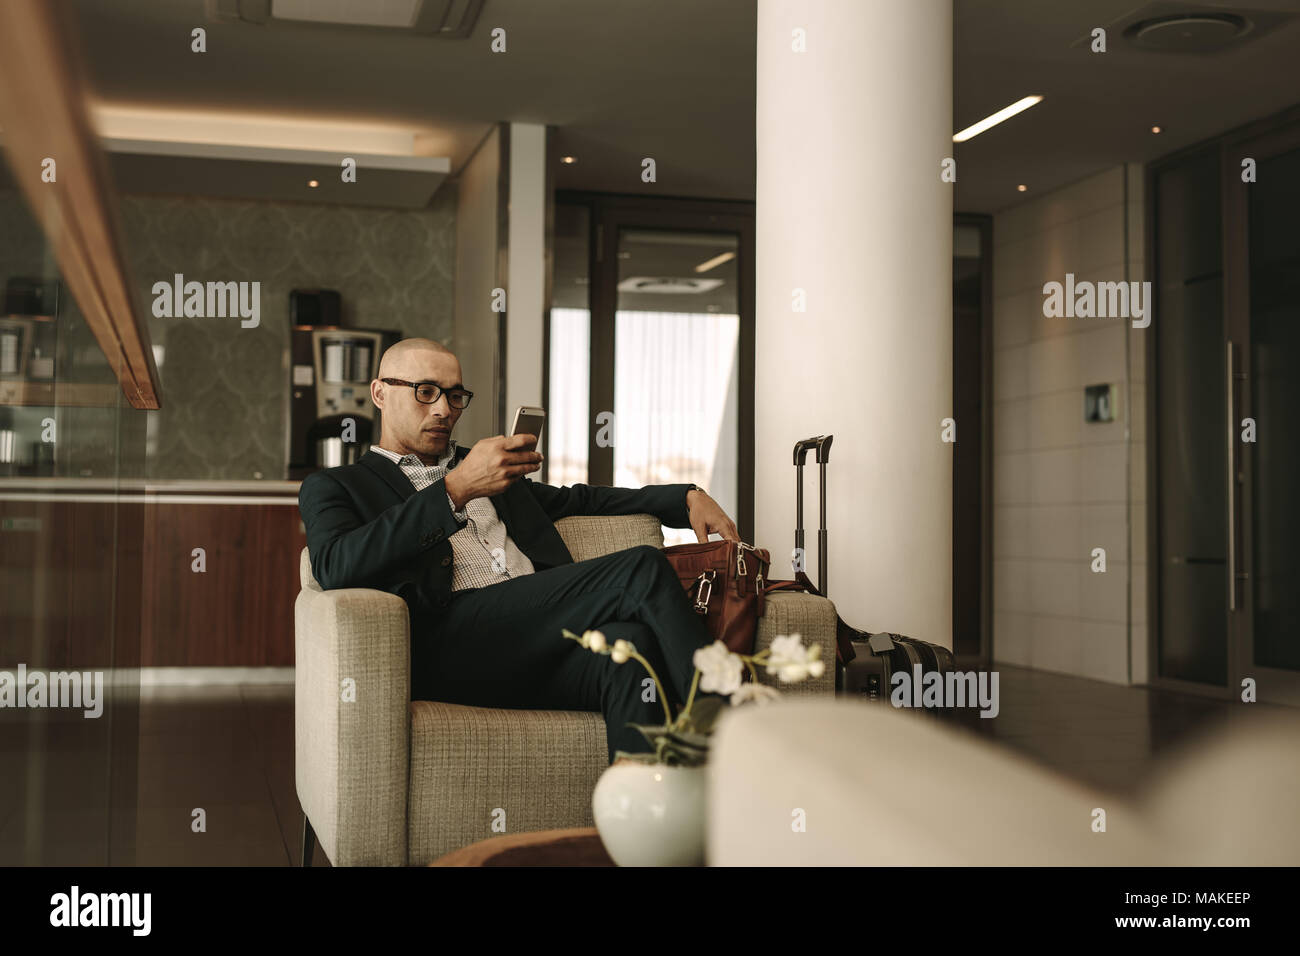 Business traveler waiting in airport lounge and using mobile phone. Businessman waiting for fight at airport lounge. - Stock Image